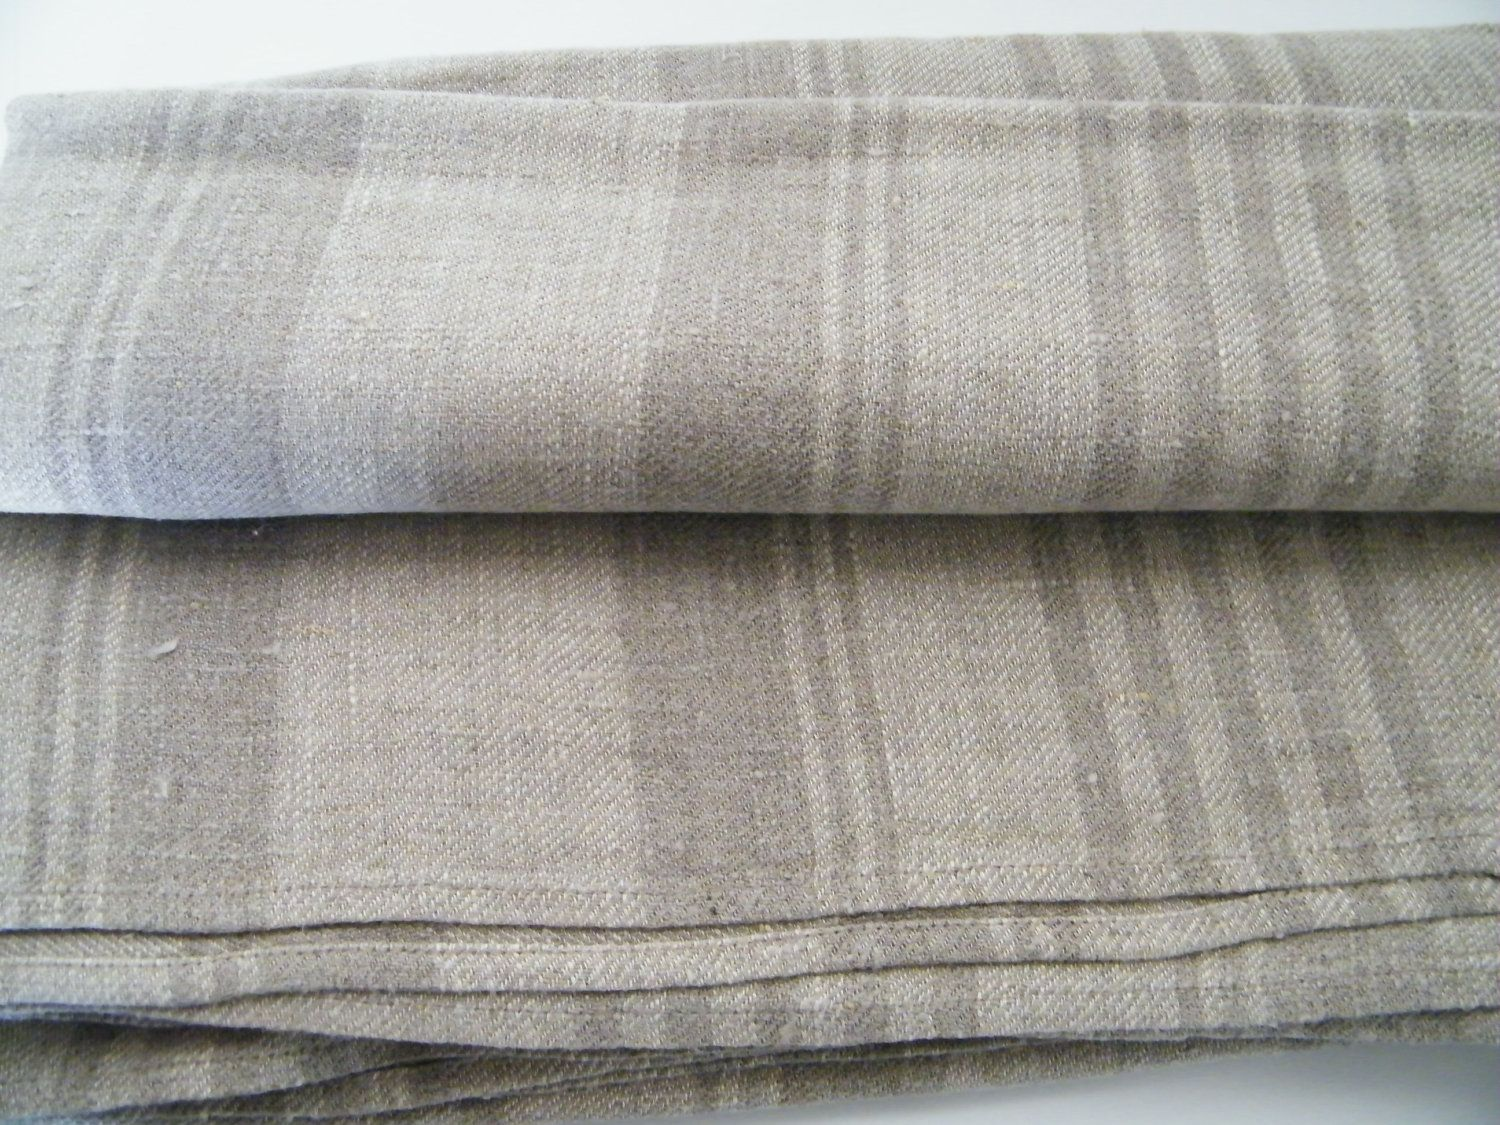 2 Natural Linen Bath Towels Large Bath Sheets Huckaback Gray Ecru Lighter Darker Stripes For Spa Sauna Baby Linen Bath Towels Natural Linen Large Baths